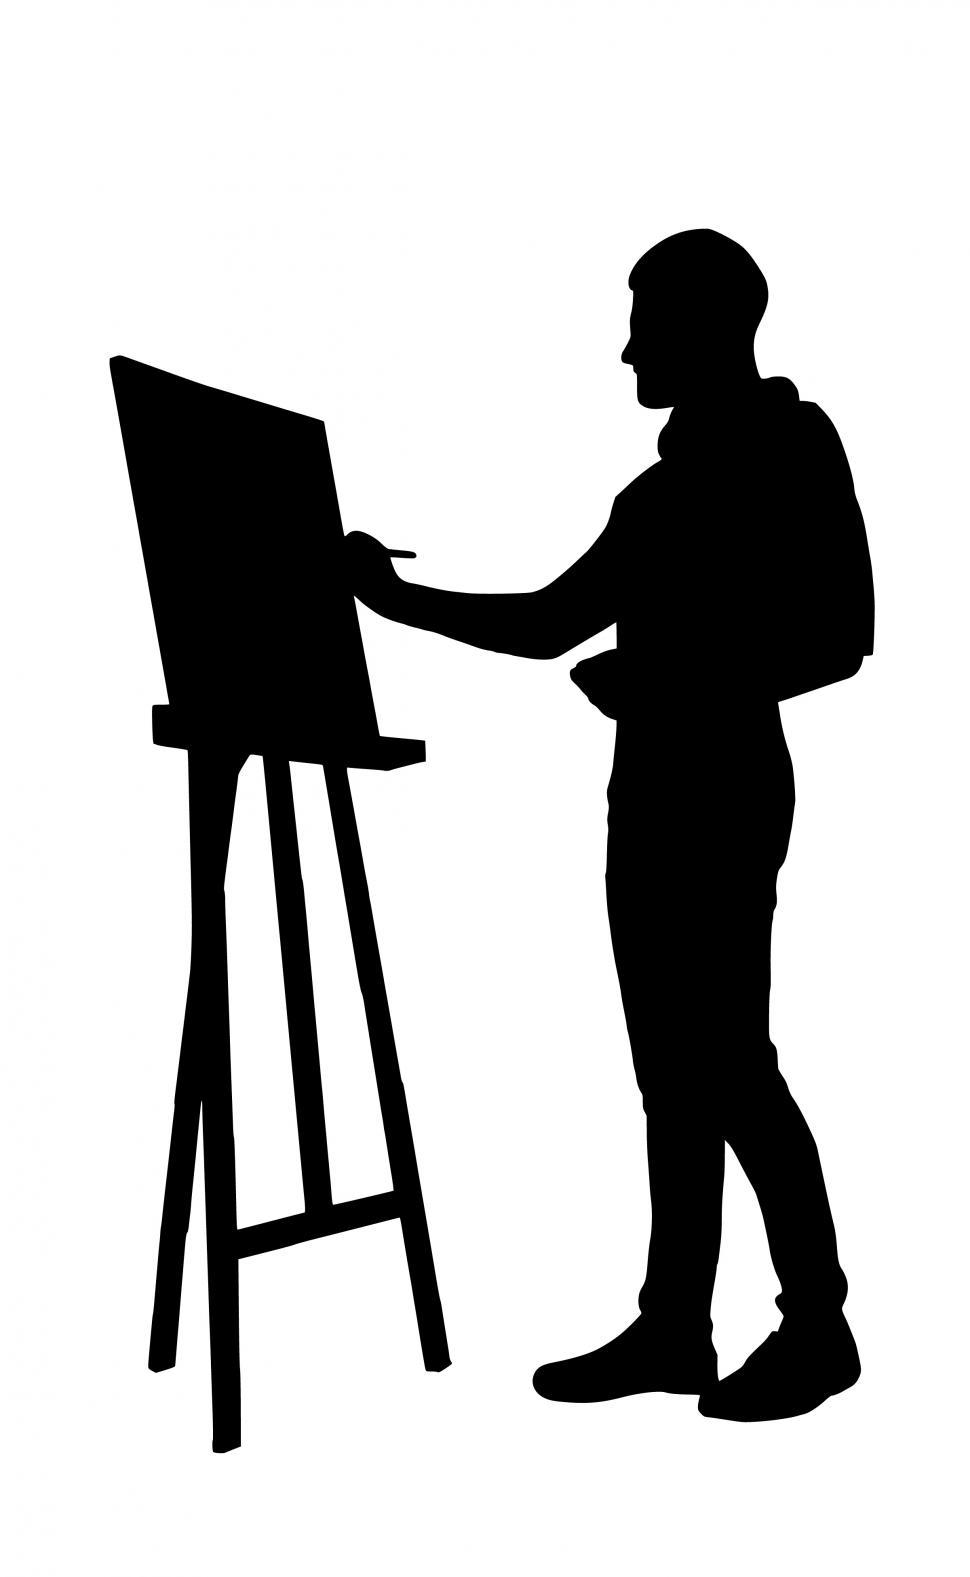 Download Free Stock Photo of artist painting Silhouette